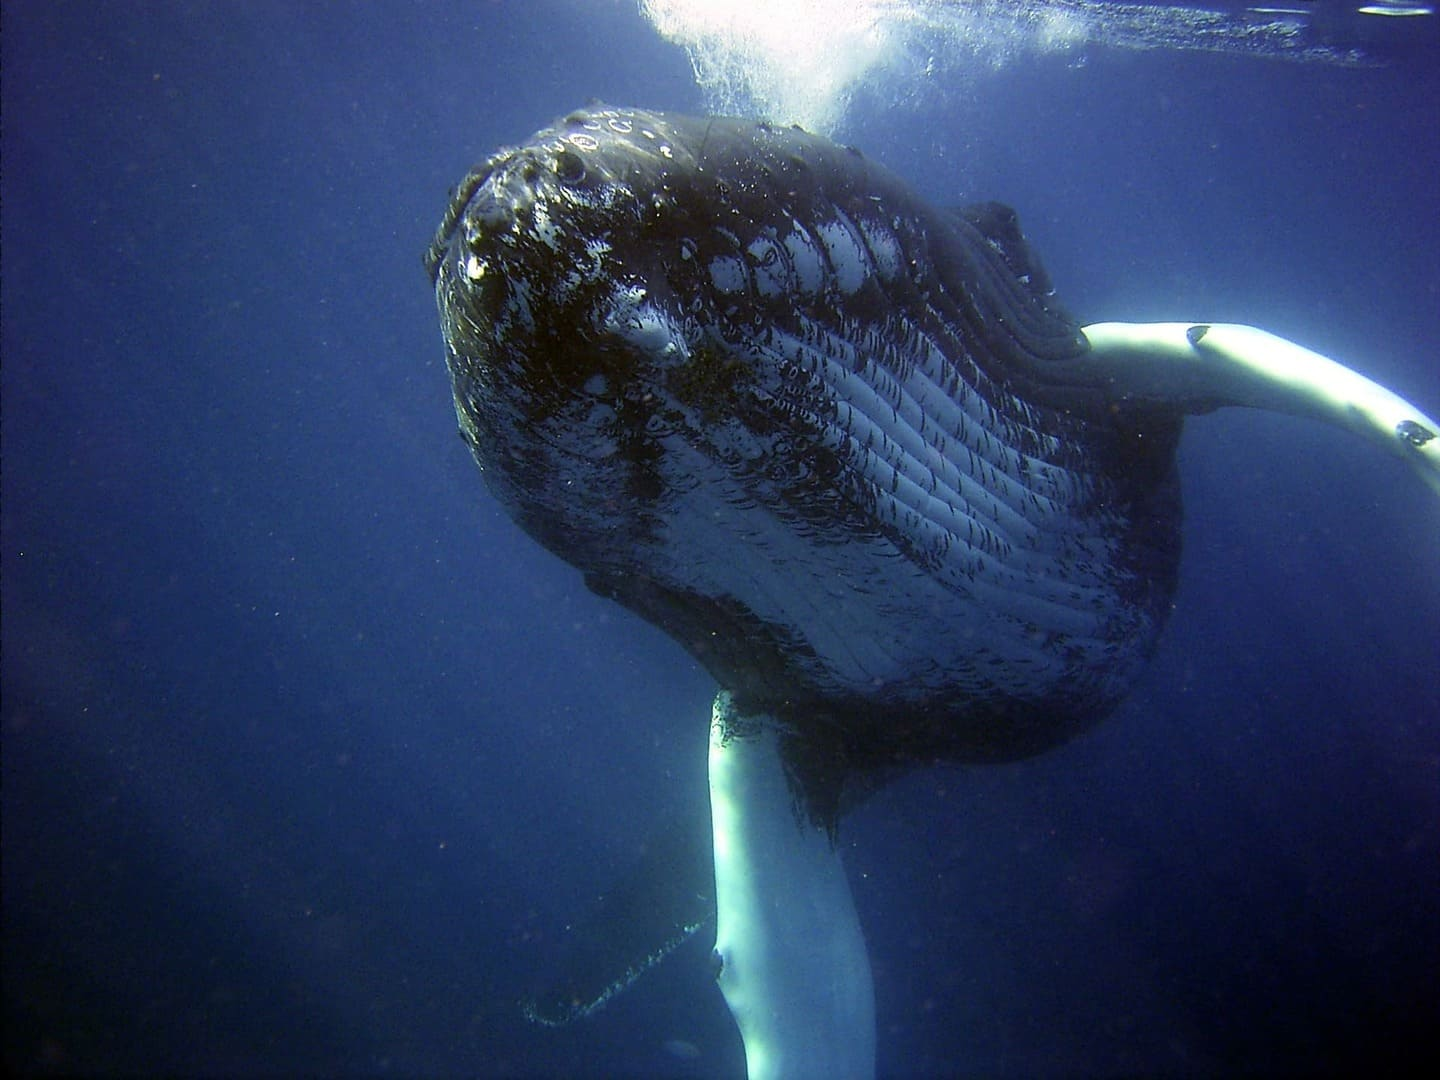 Tonga is know for its sightings of Humpback whales